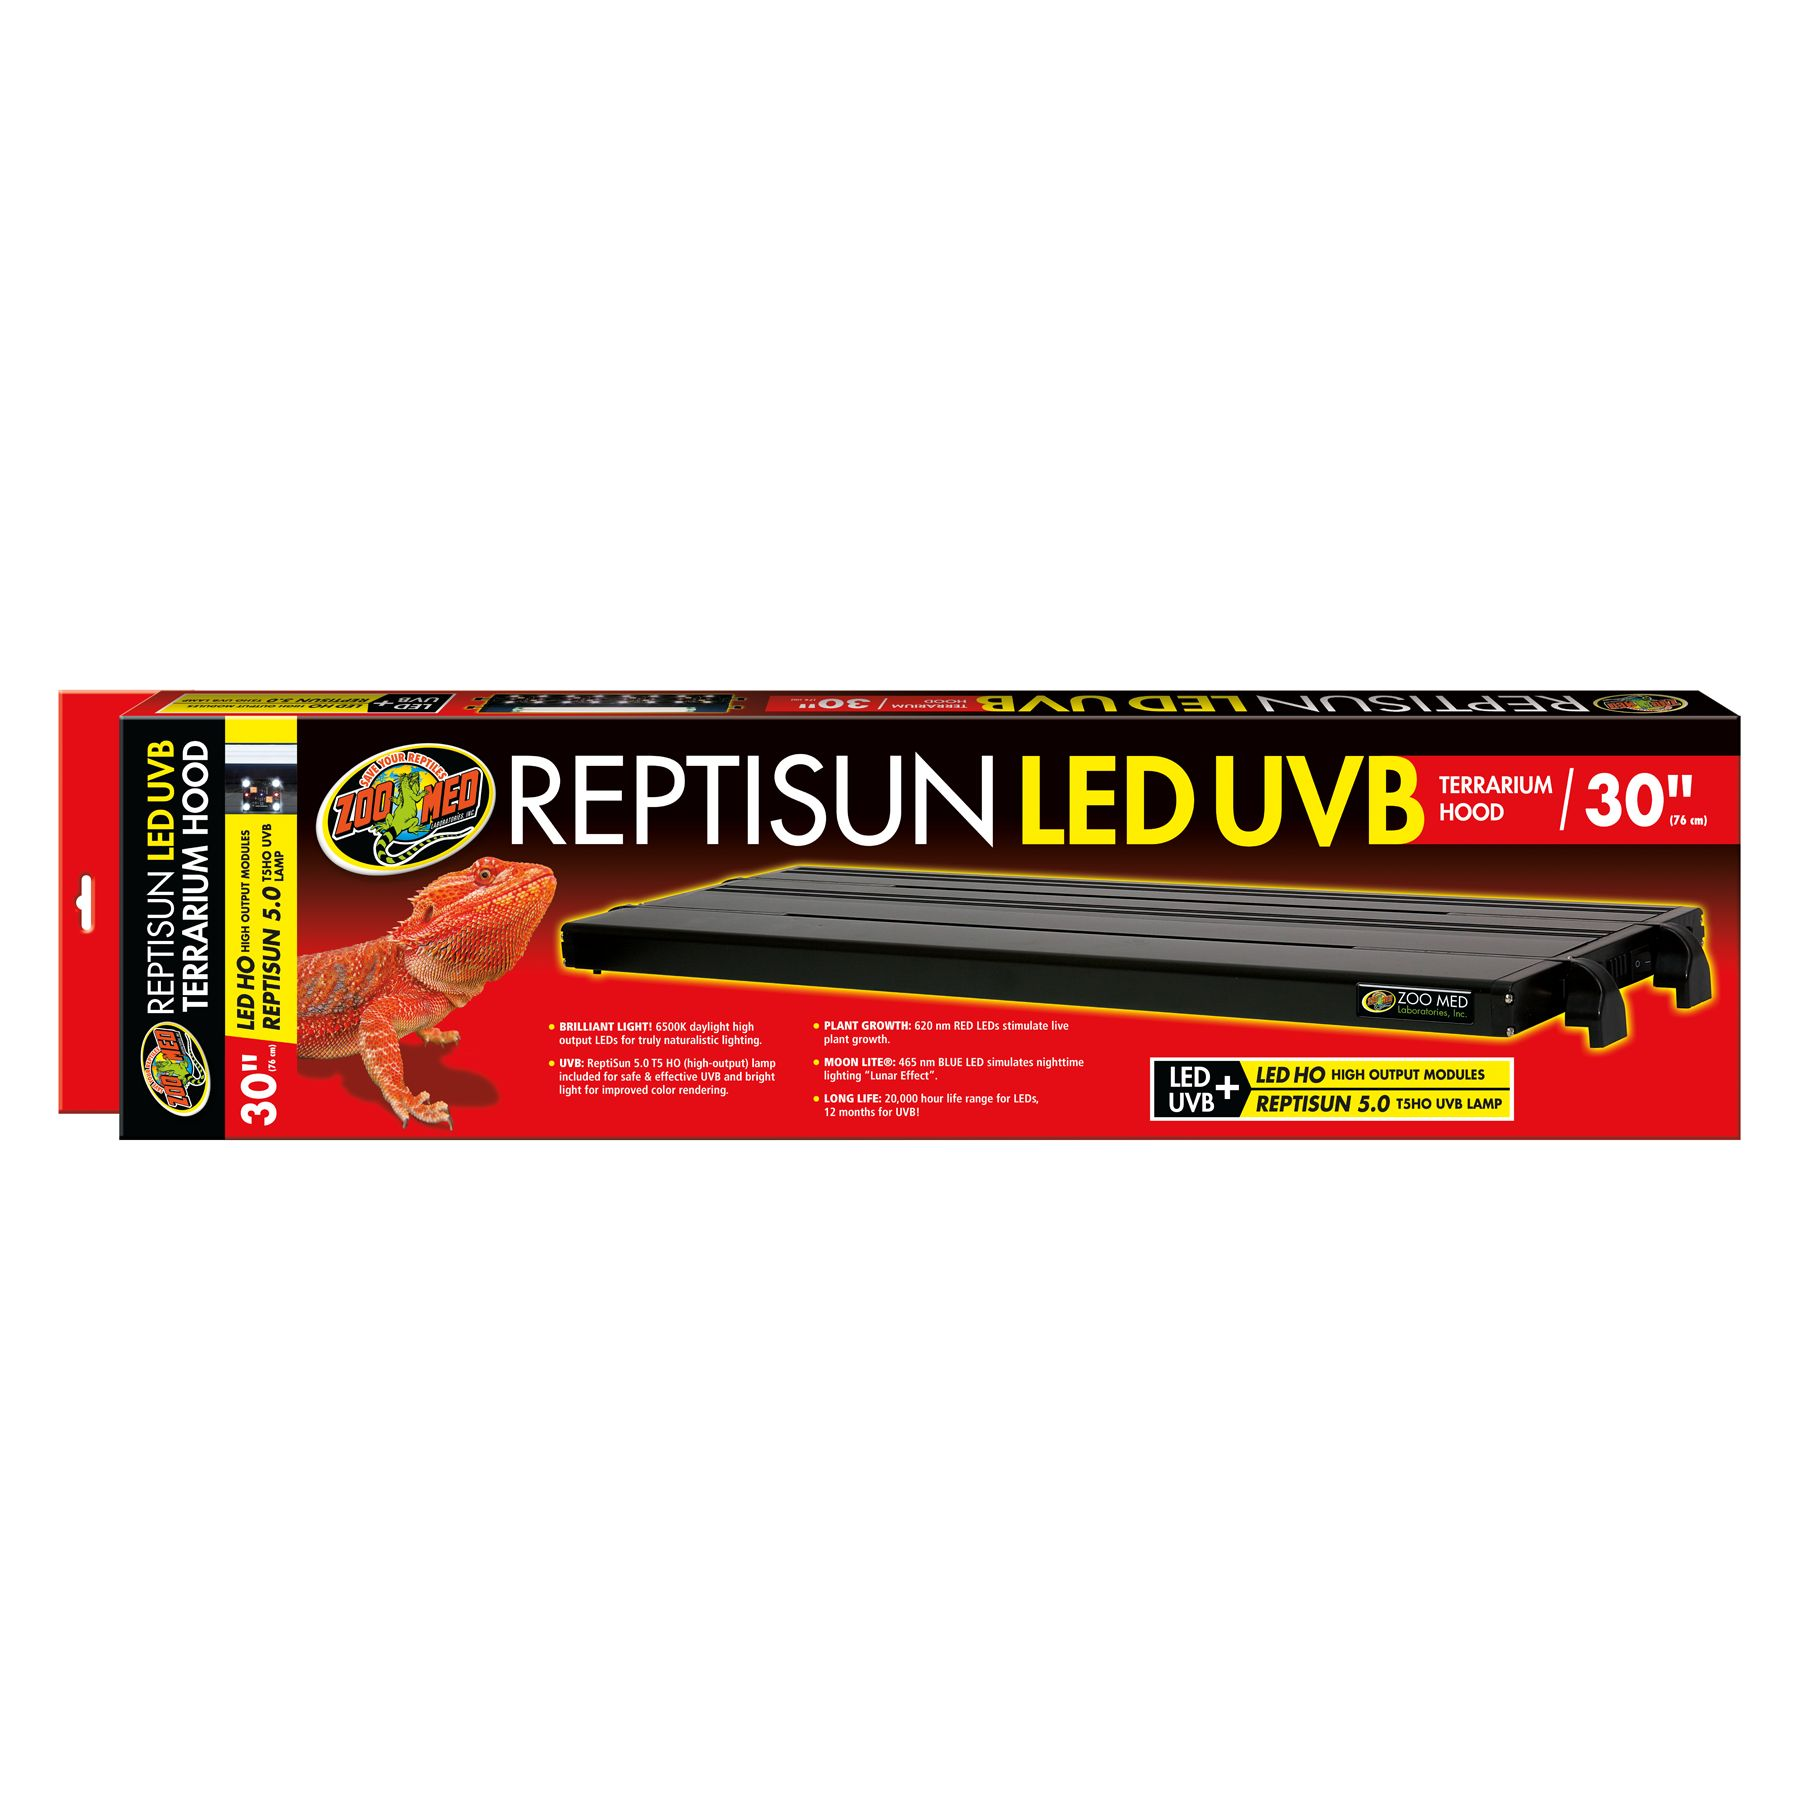 Zoo Med, ReptiSun LED UVB Reptile Terrarium Hood size: 30 in 5249763